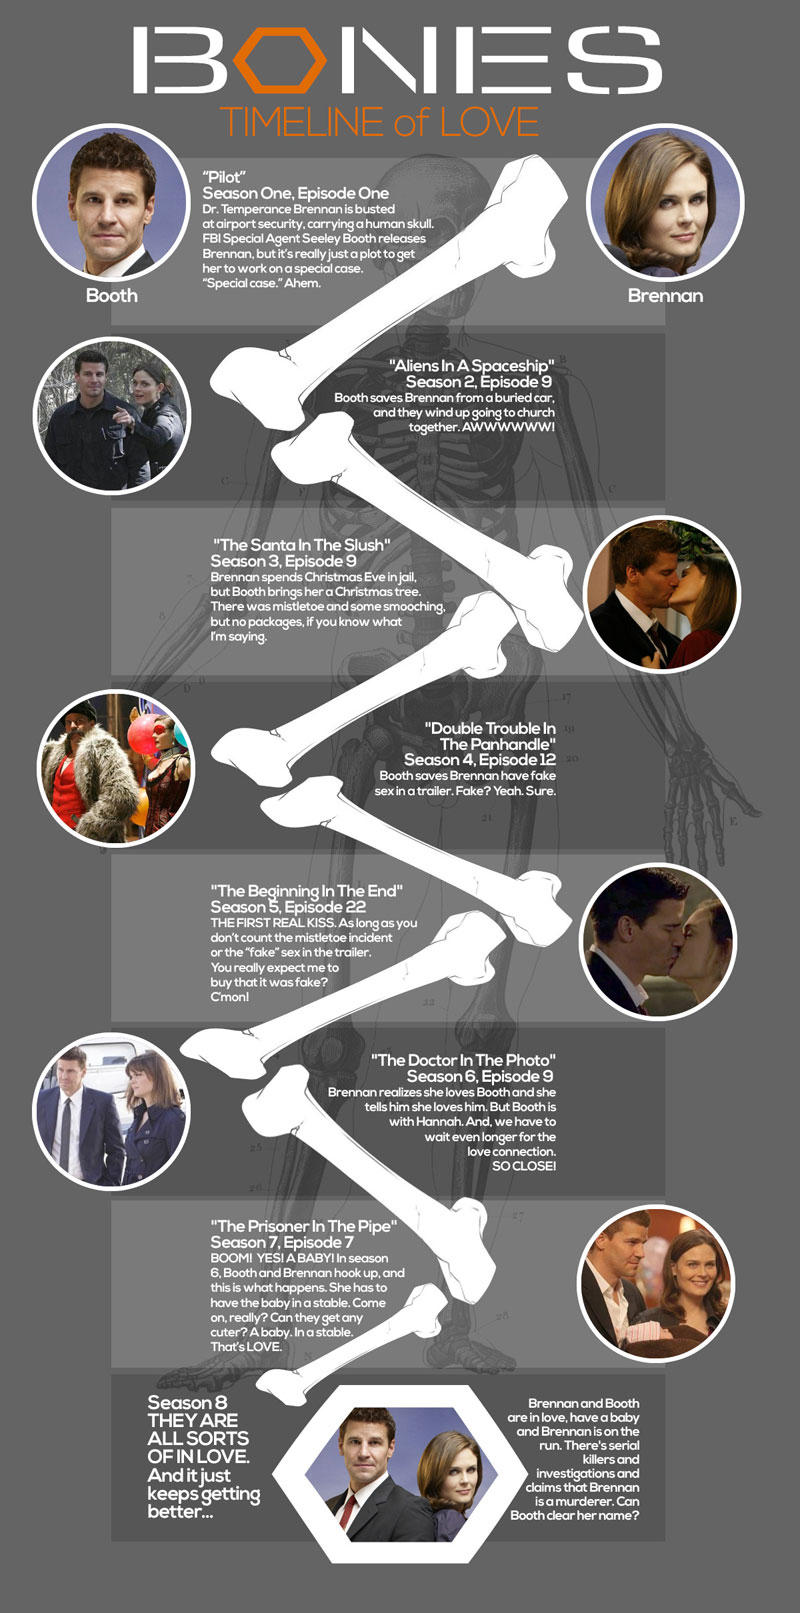 bones brennan and booth relationship timeline template